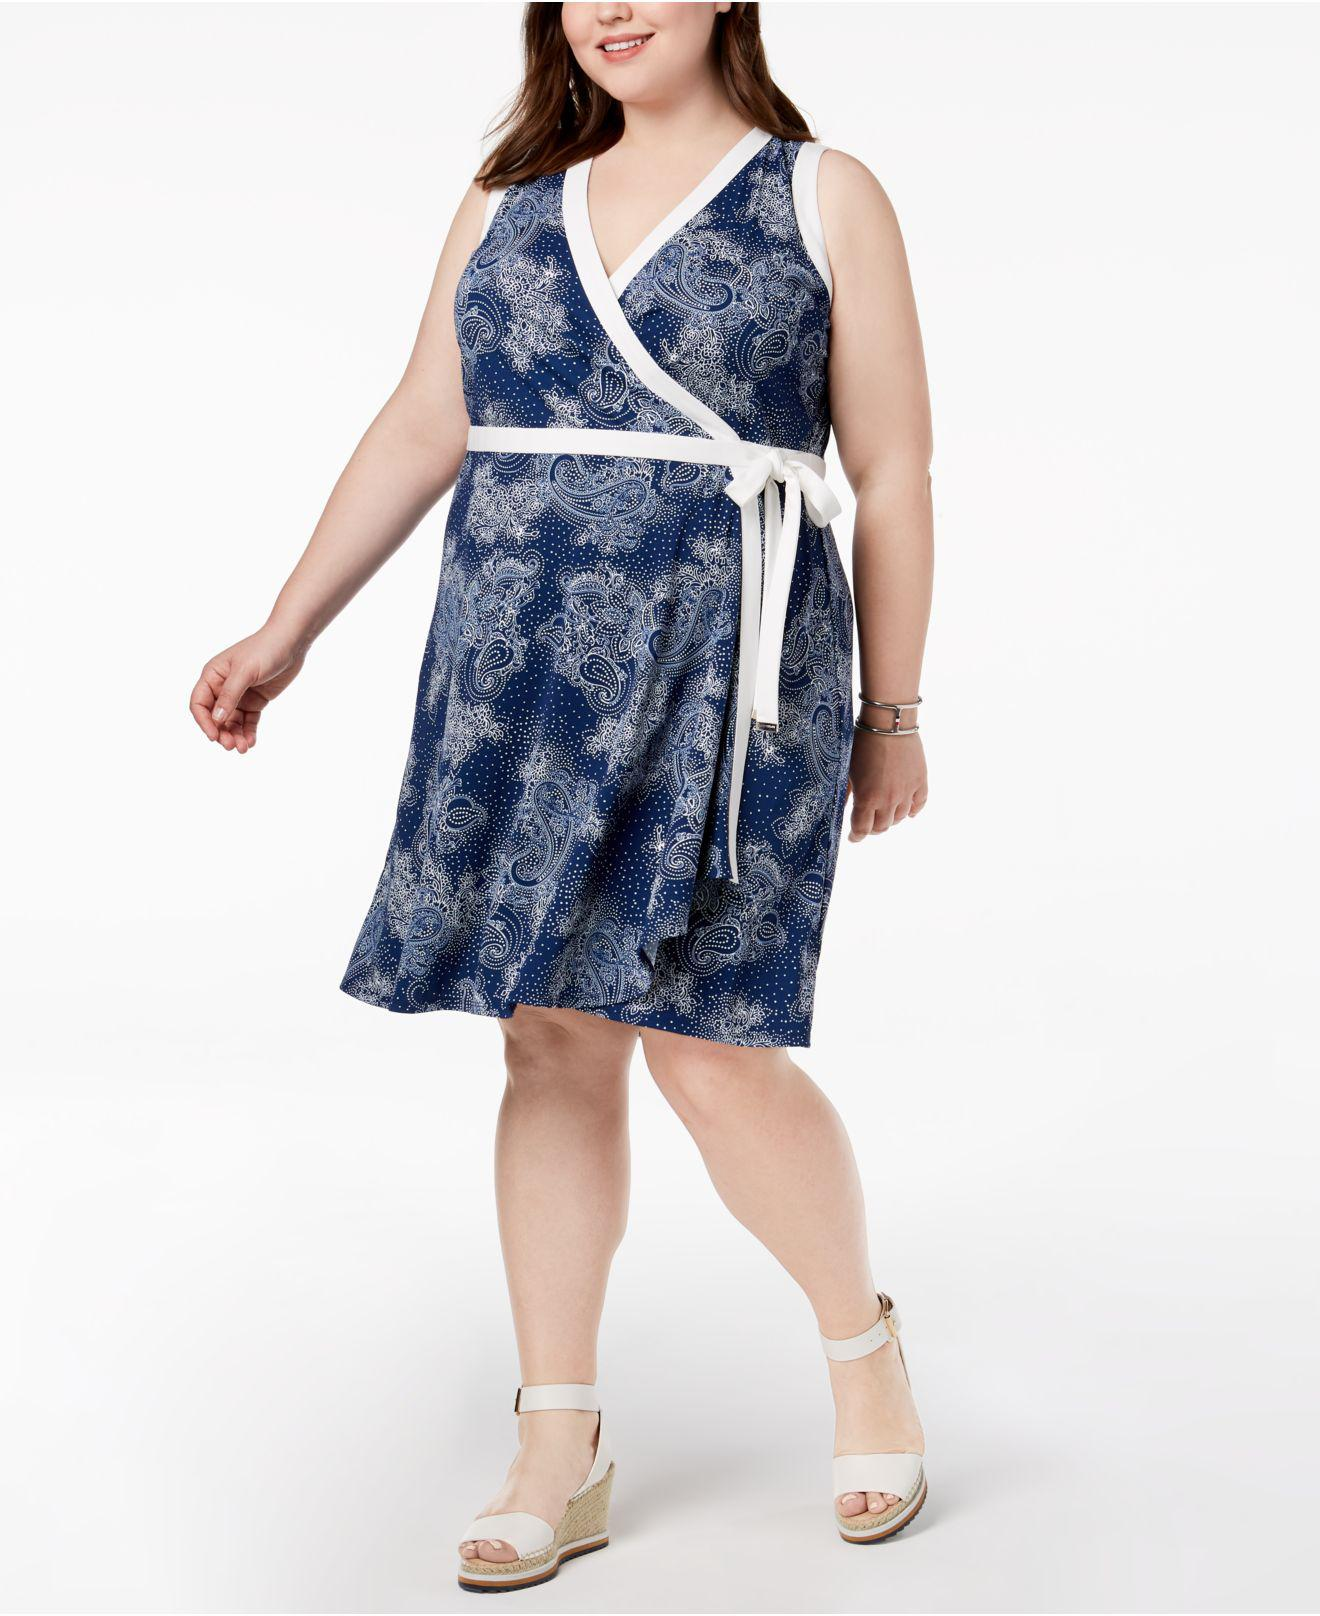 29f493333d1 Lyst - Tommy Hilfiger Plus Size Printed Sleeveless Wrap Dress ...